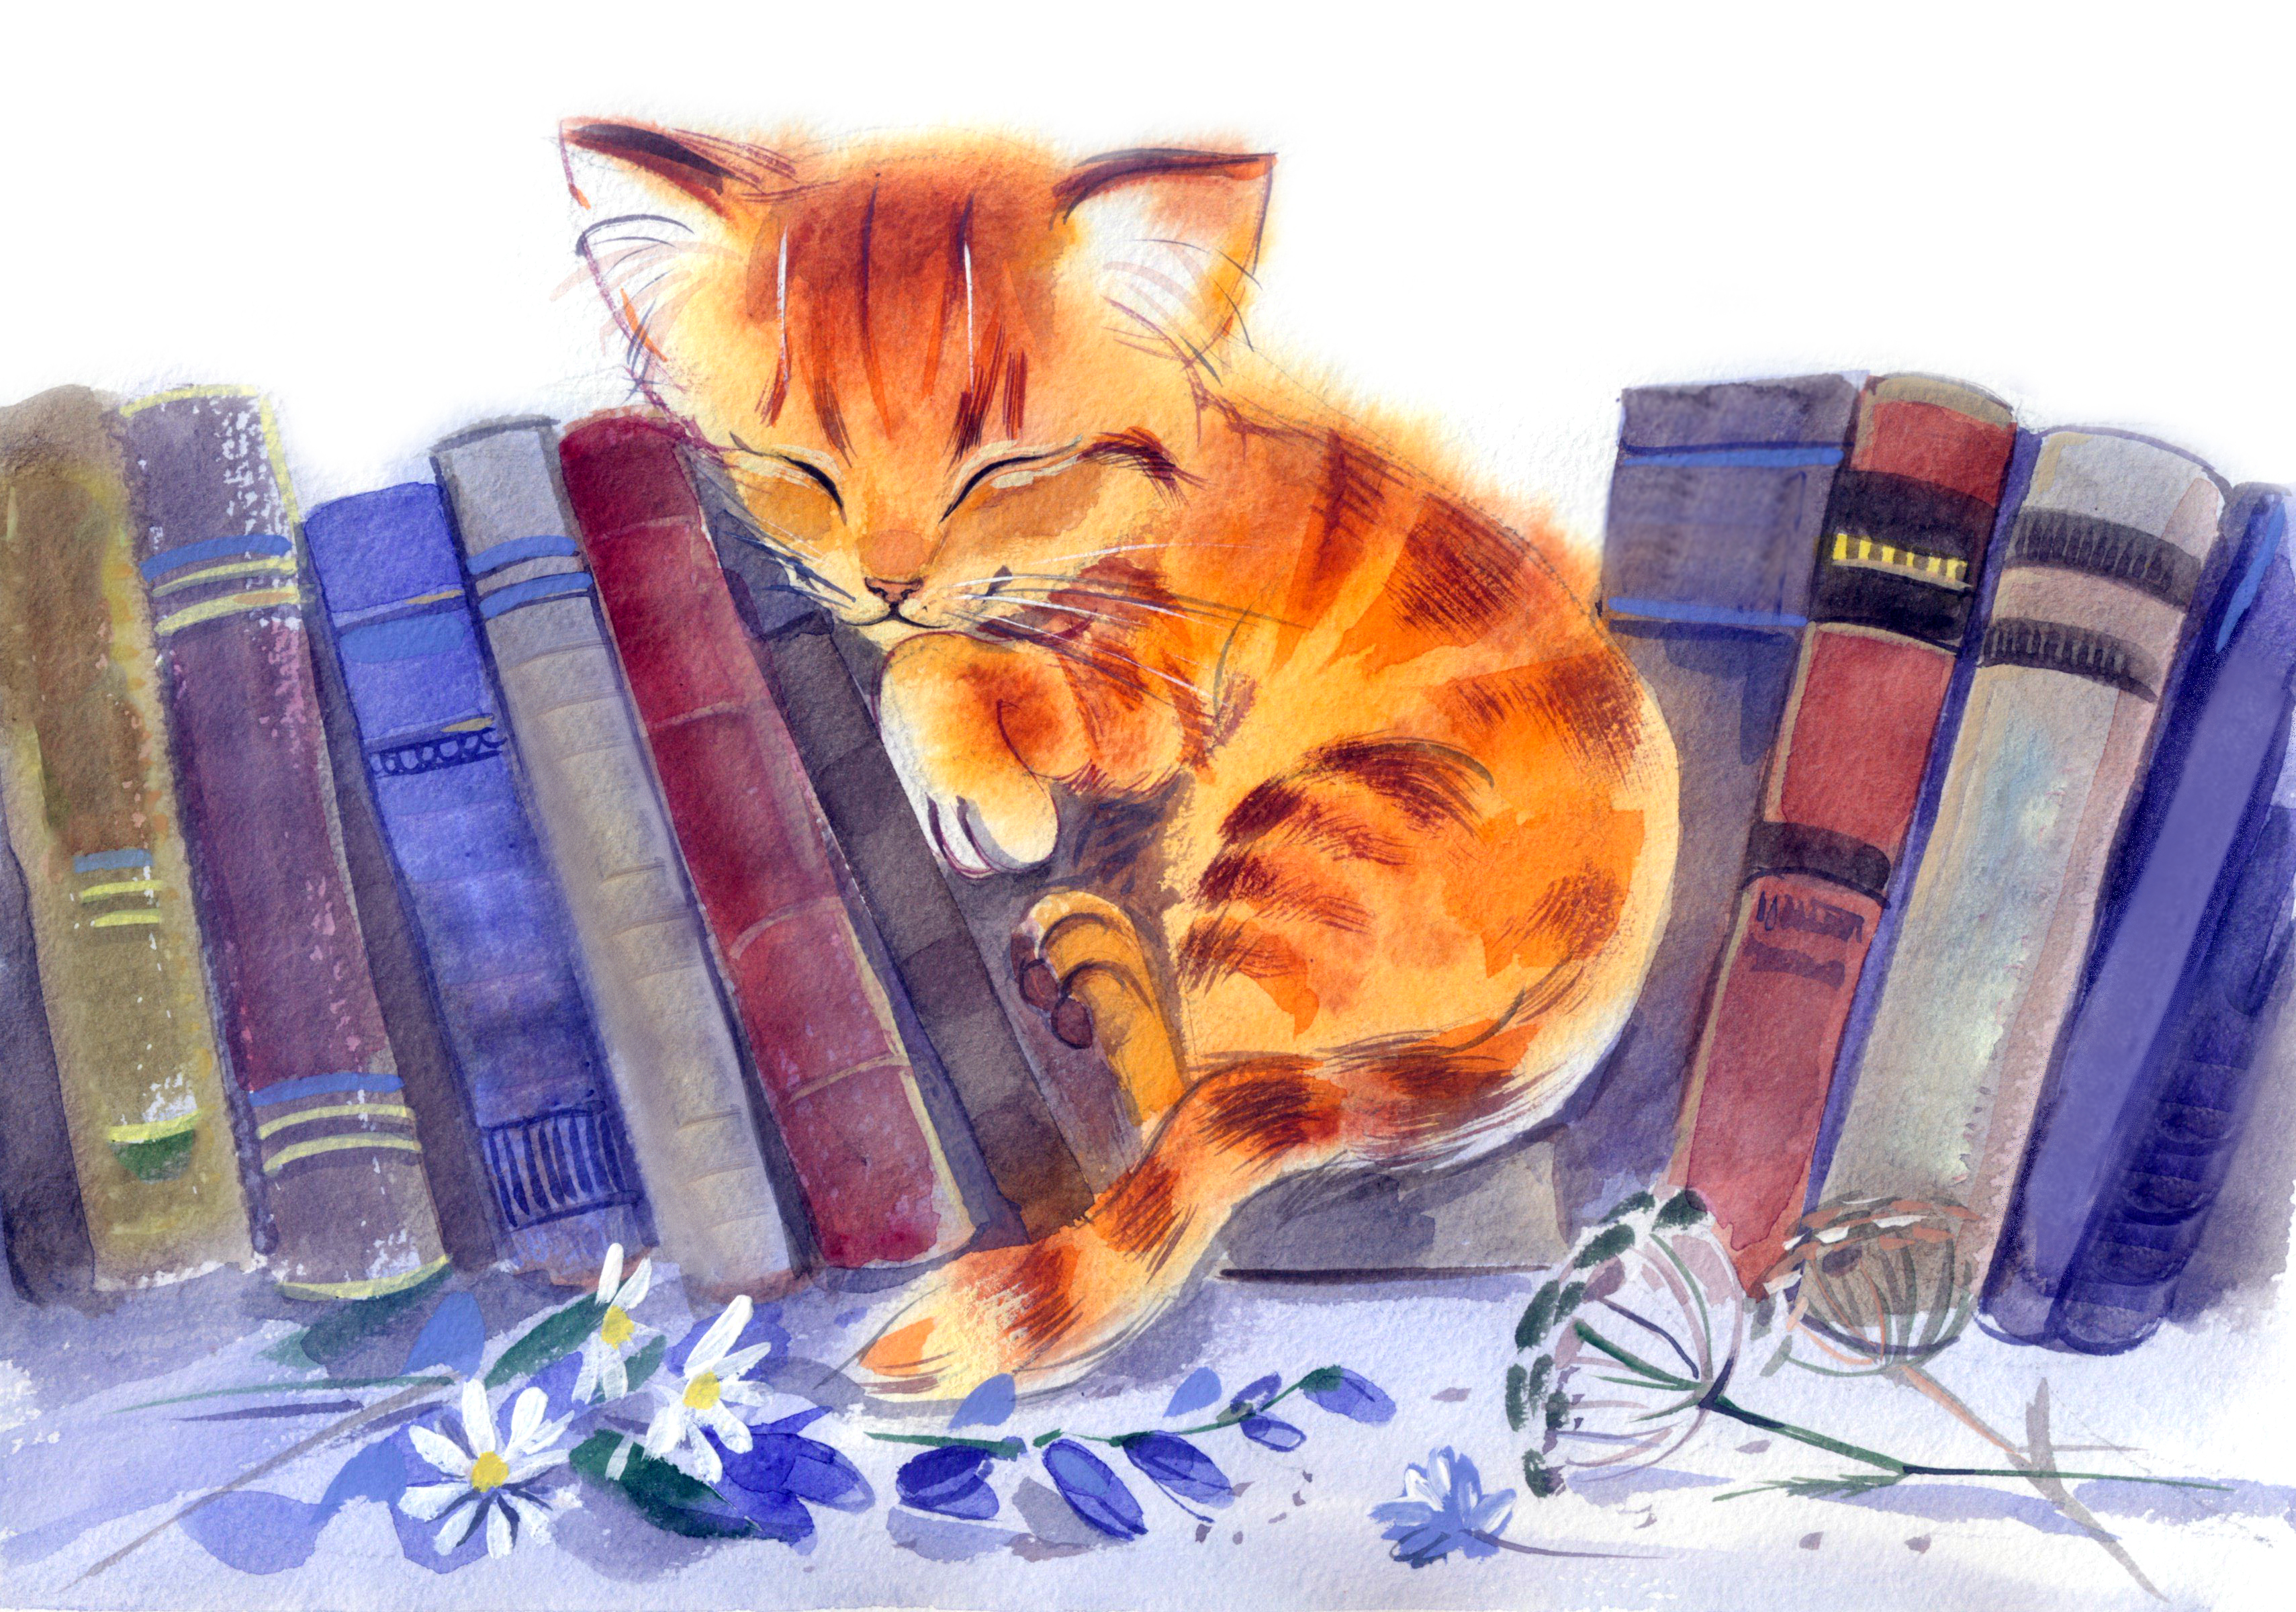 Kitten asleep on bookshelf